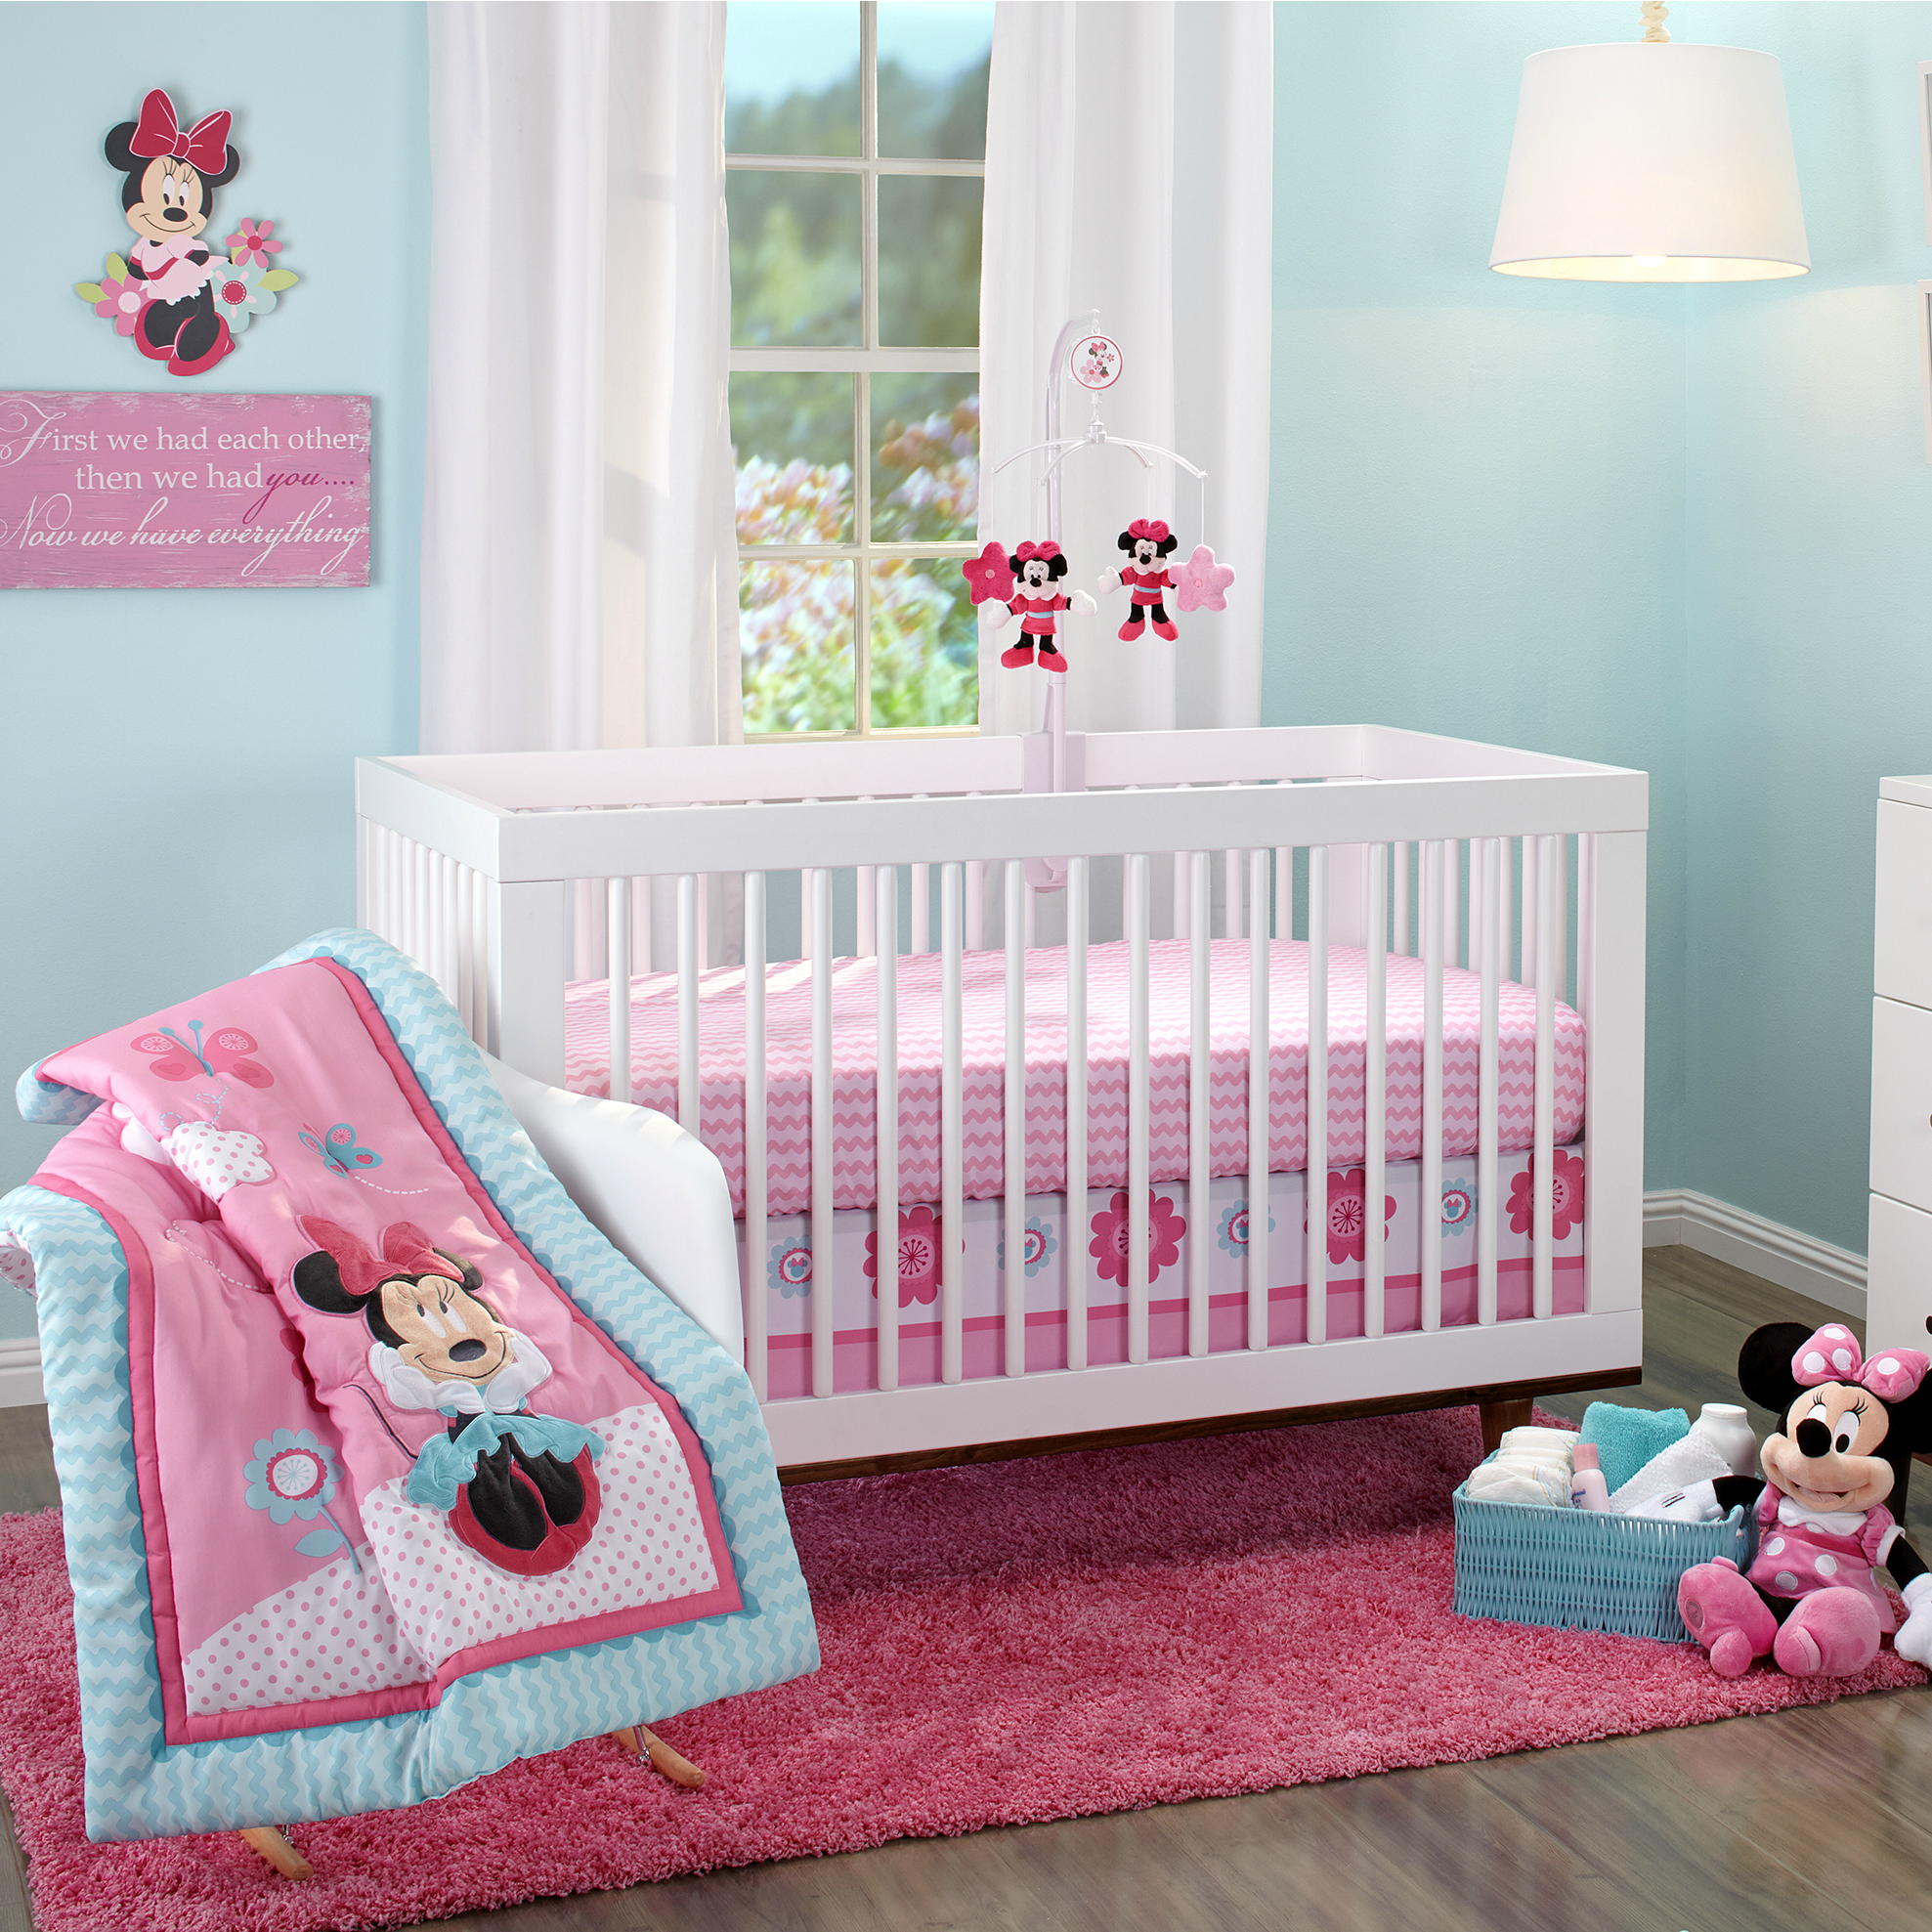 Winnie The Pooh Crib | Minnie Mouse Crib Set | Lion King Nursery Set